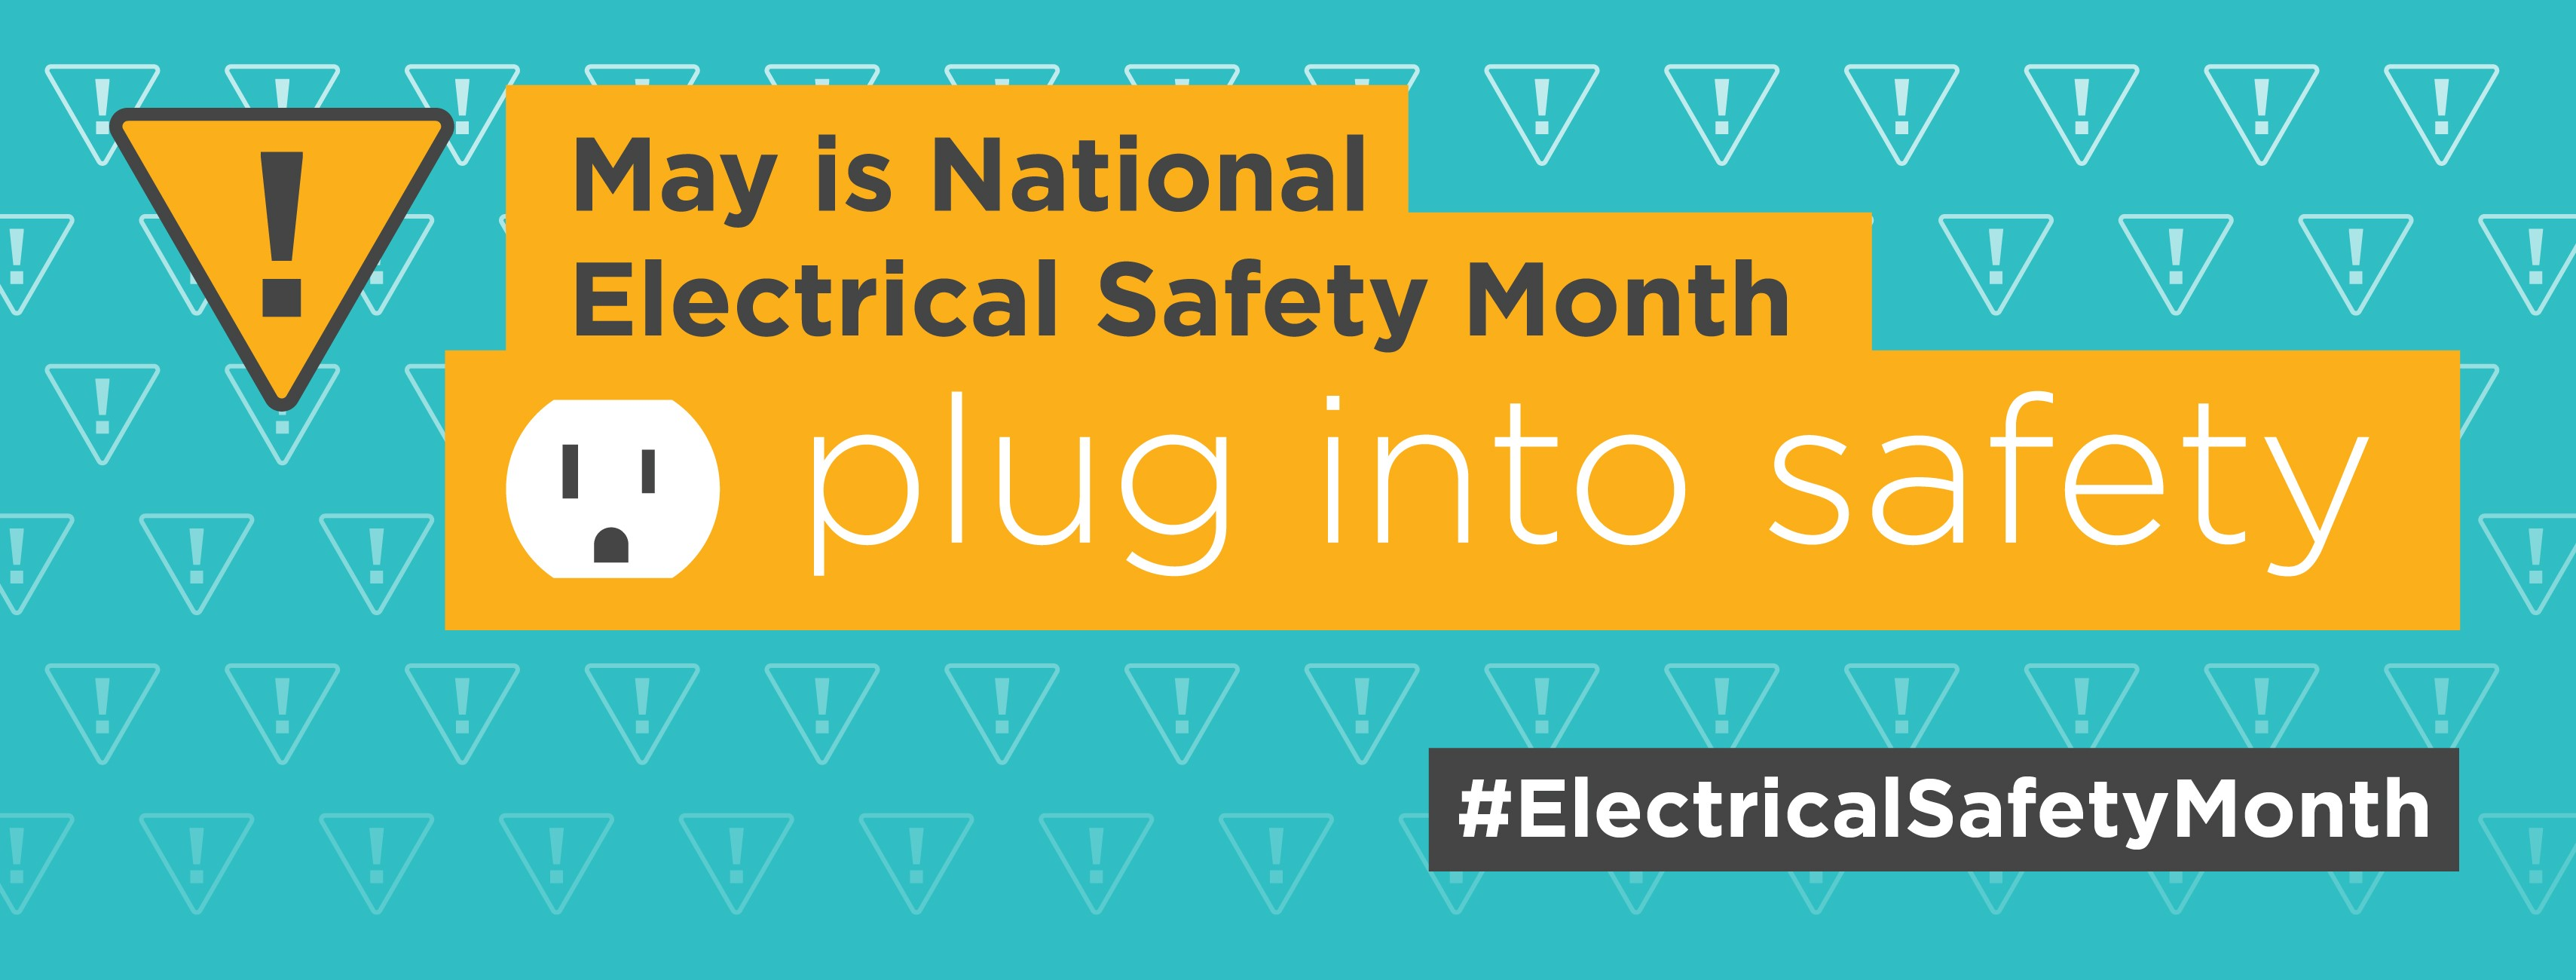 Electrical-Safety-Month.jpg